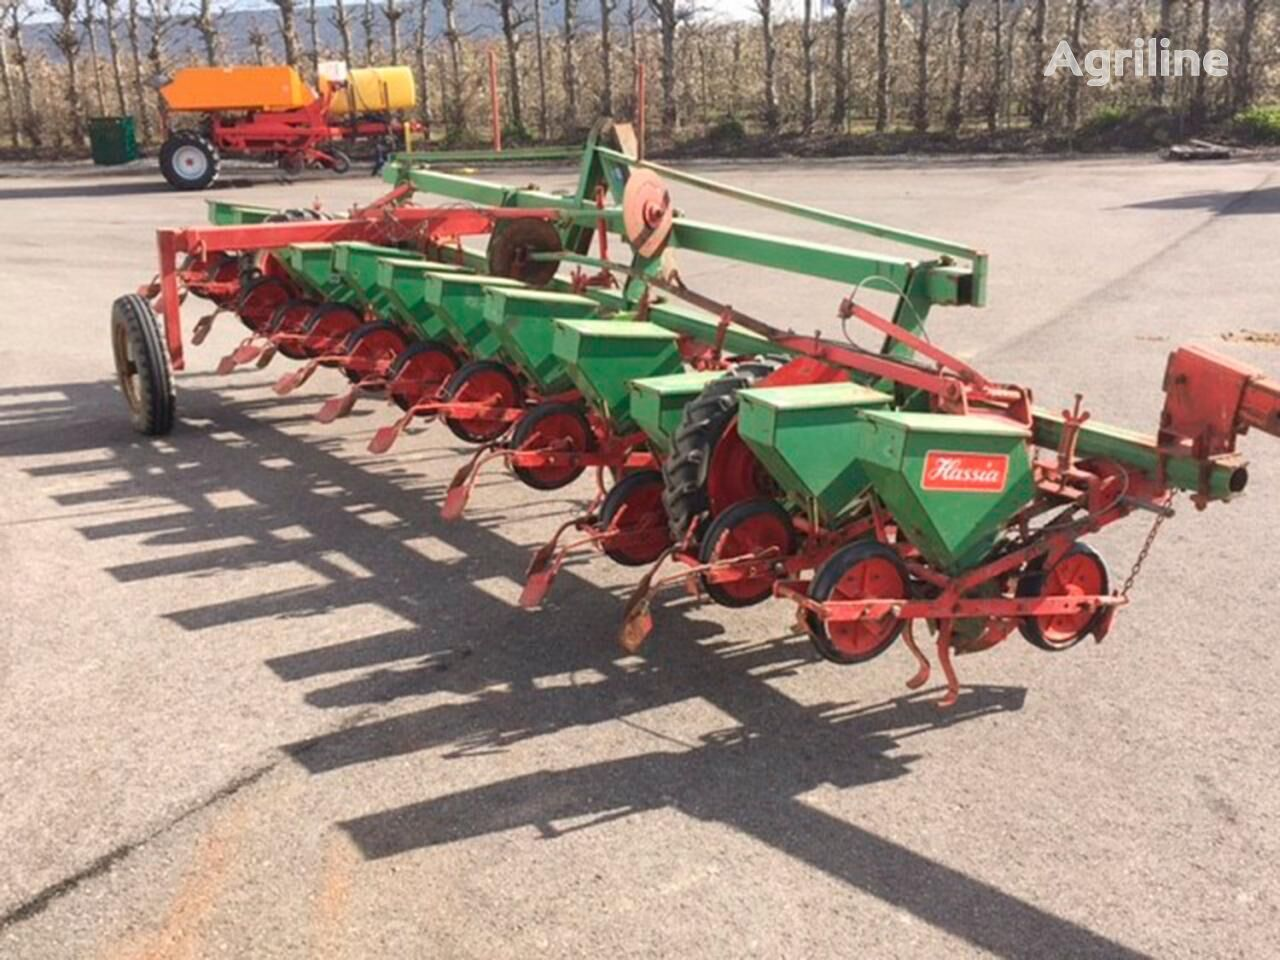 HASSIA mechanical precision seed drill